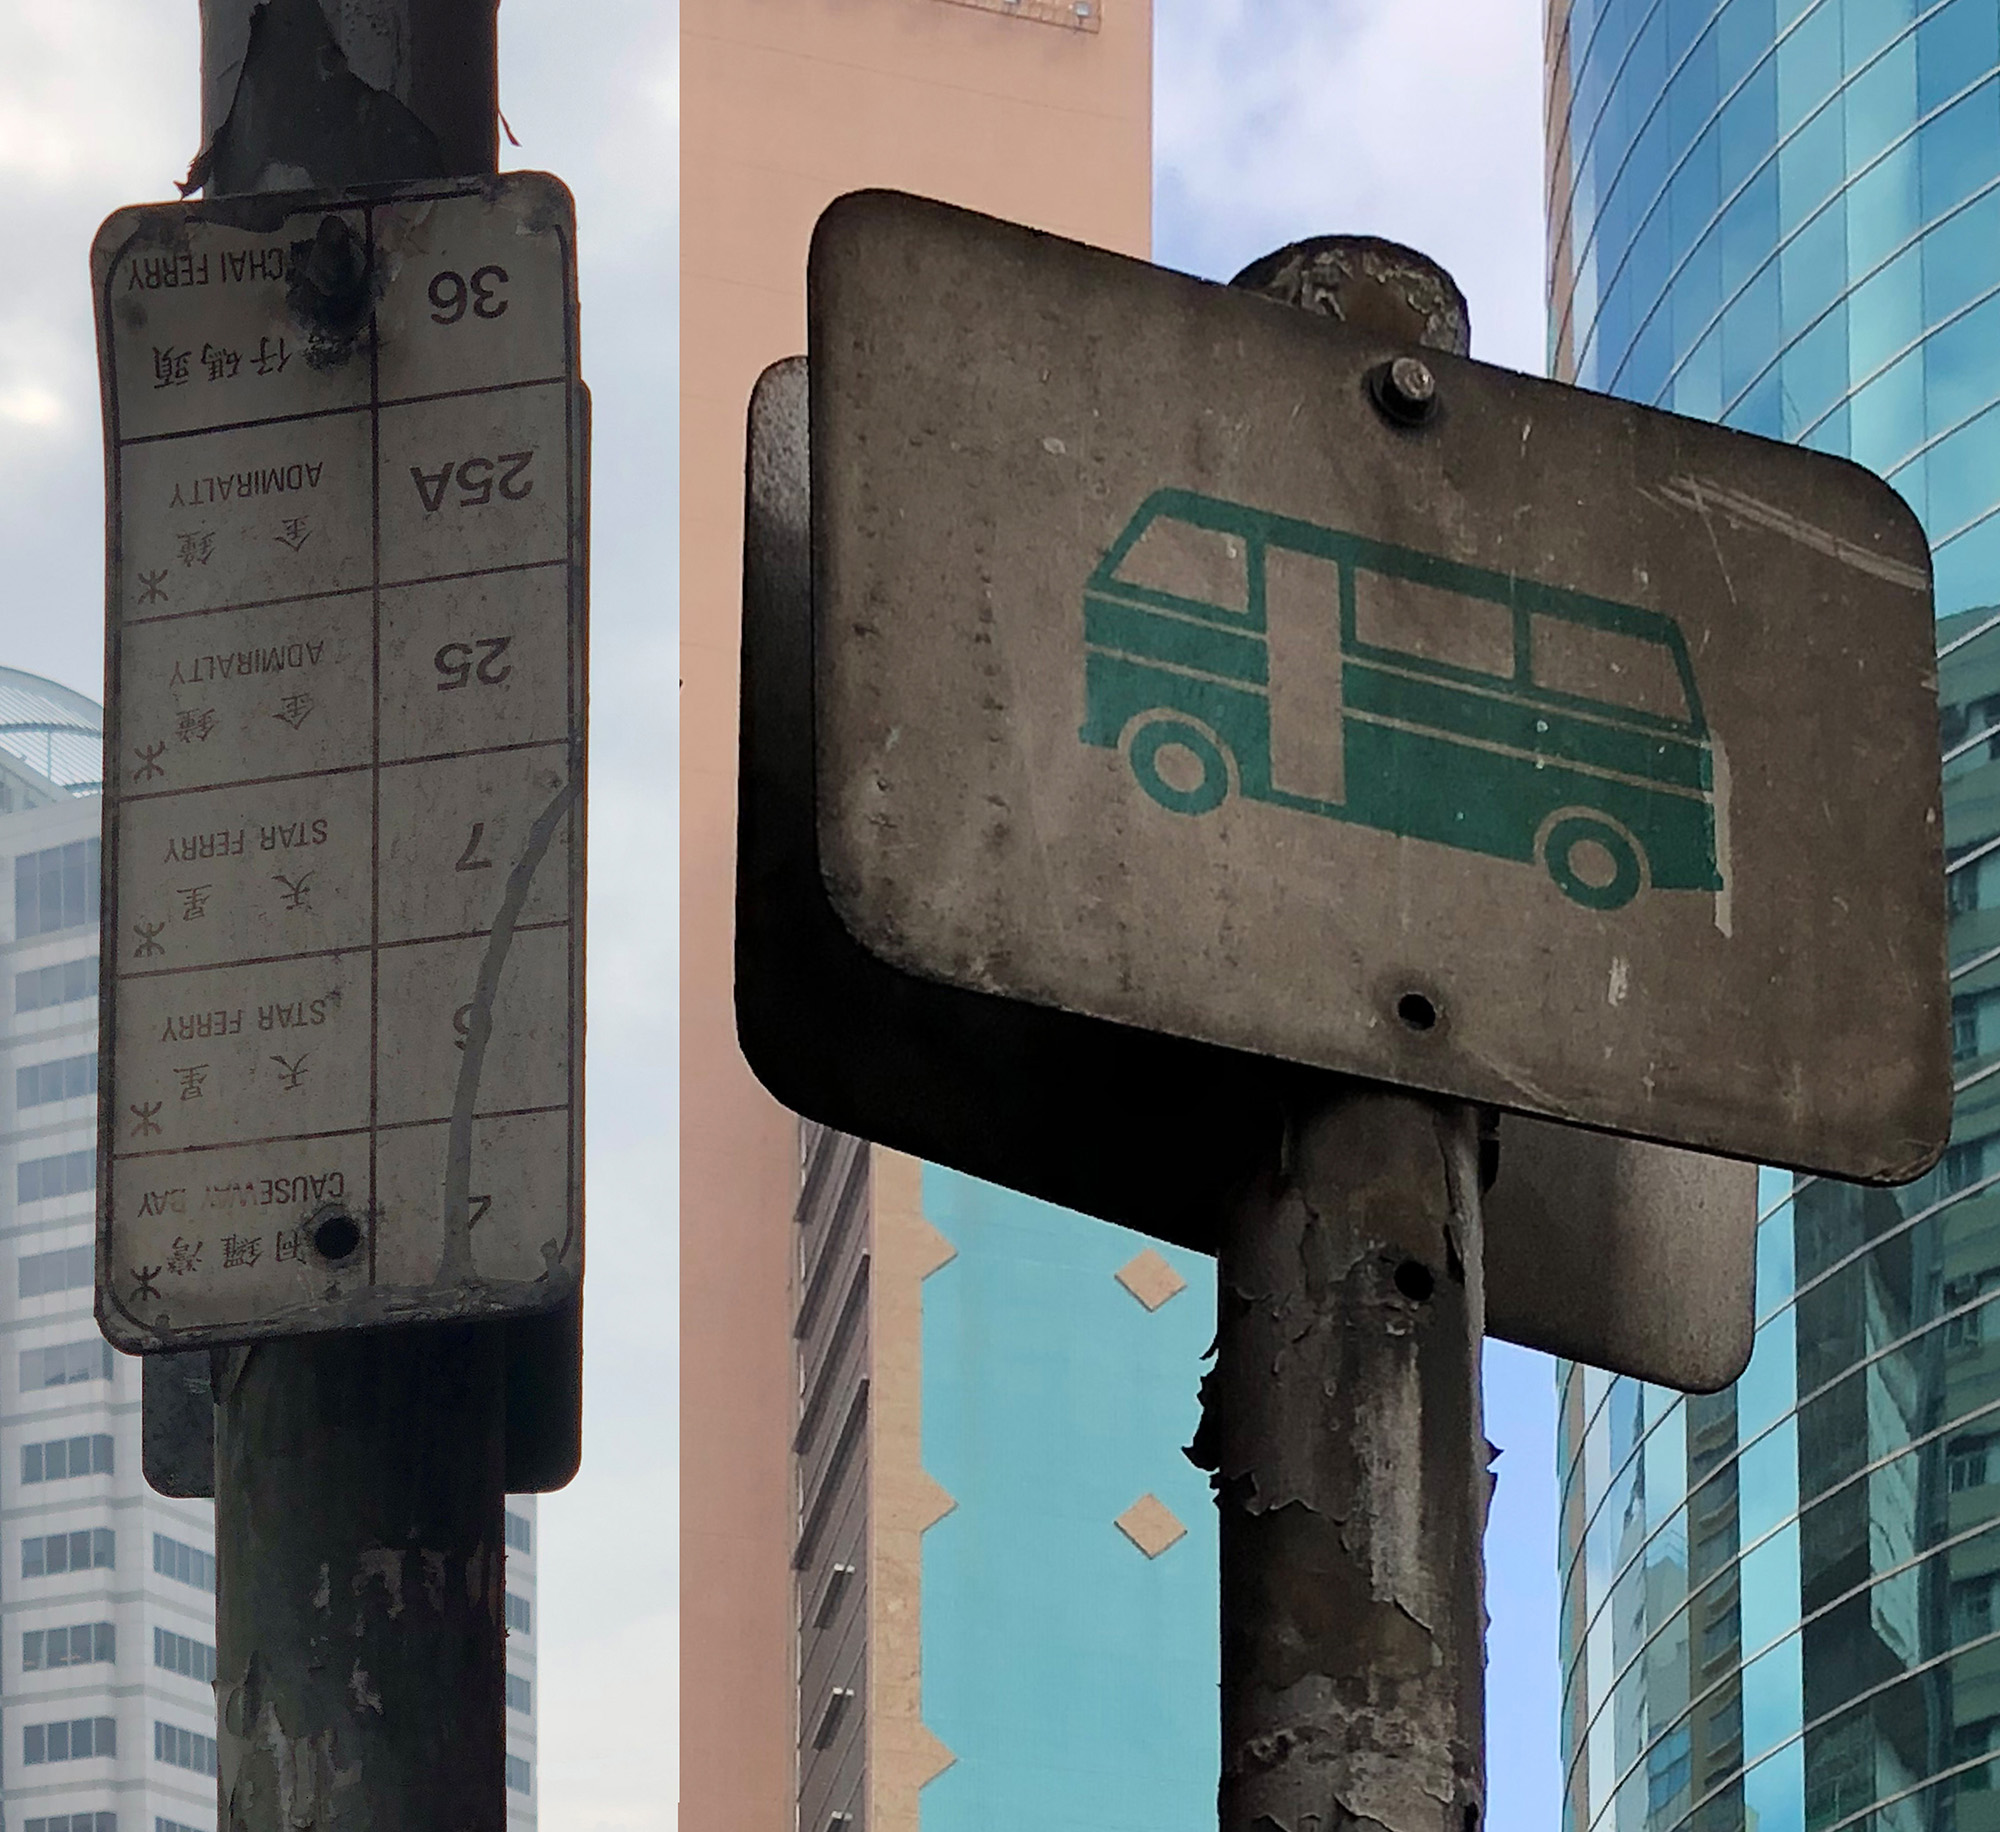 A minibus stop sign still stands in the busy Causeway Bay district, although the minibus routes and the terminals are already gone. The demolition of the previous generation of star ferry terminal has sparkled a great controversy in Hong Kong in the last decade. It is one of the iconic events in the timeline of historical building preservation in Hong Kong.